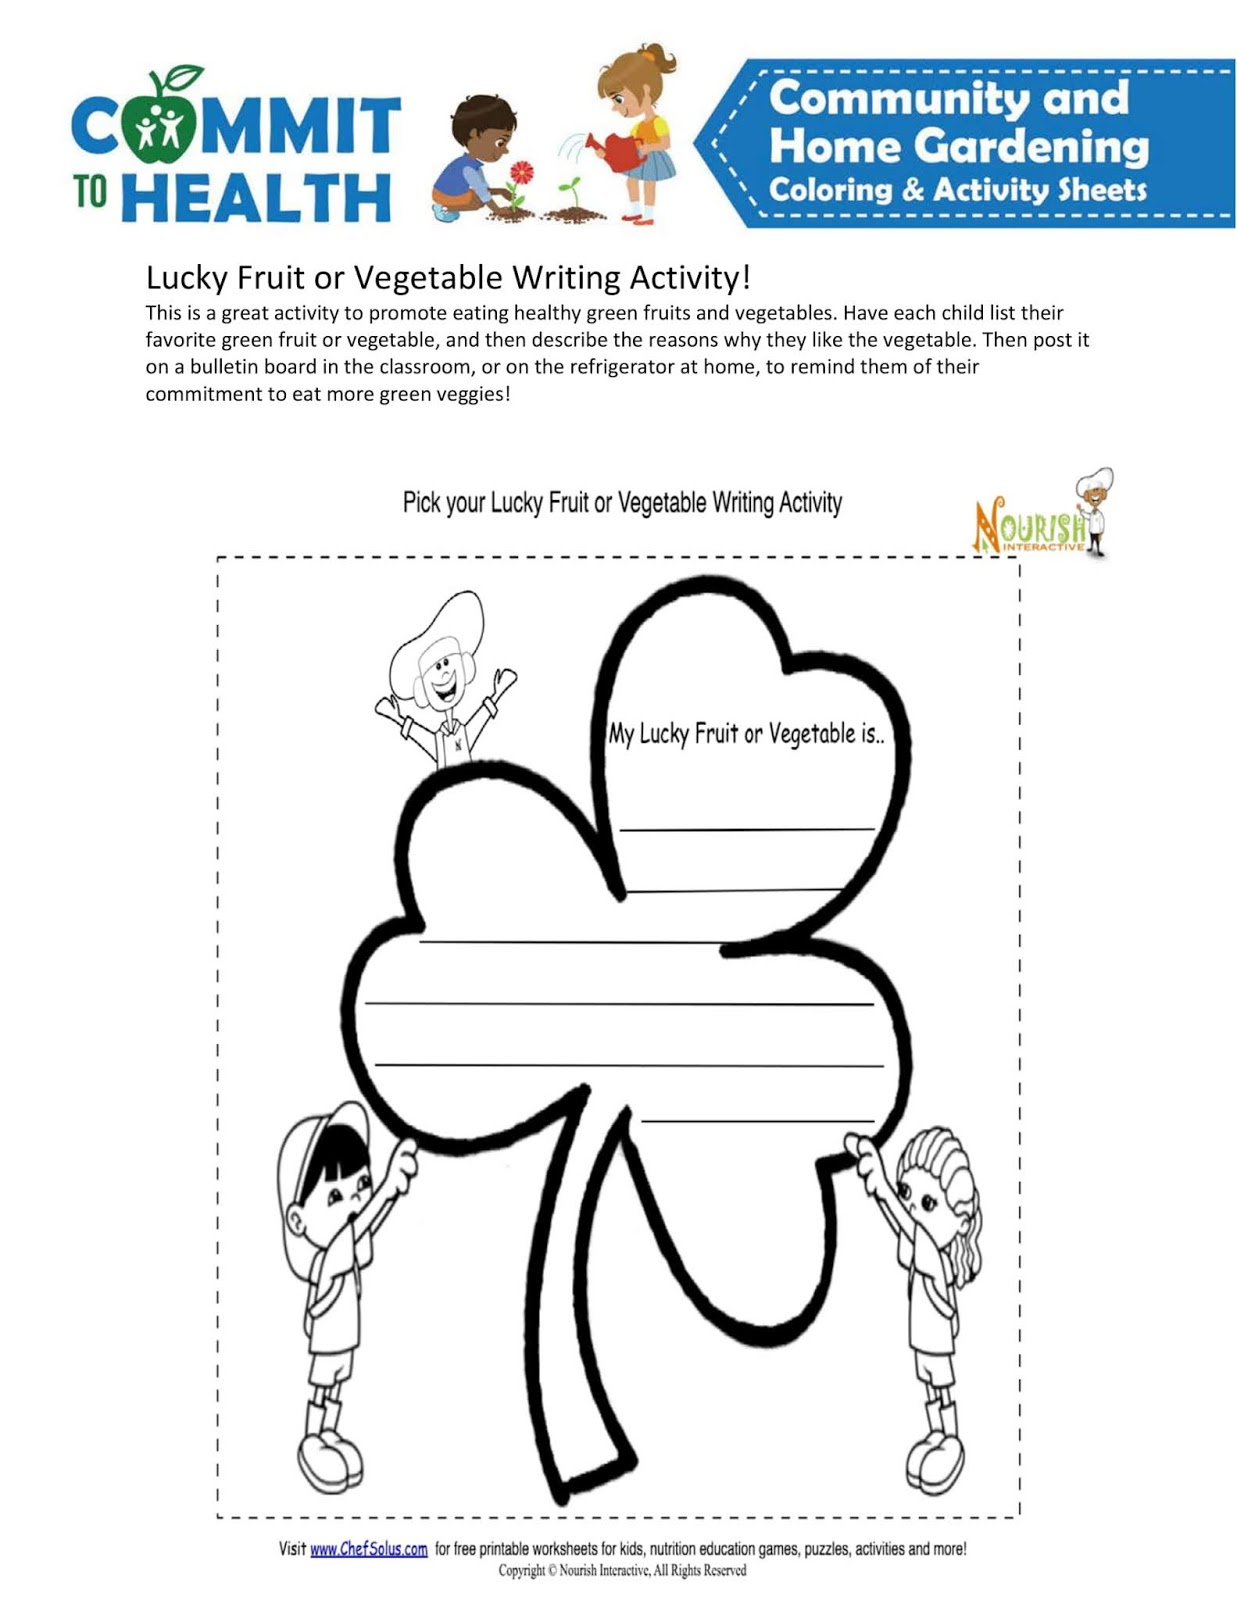 medium resolution of March coloring activity sheets gardening community home grades 3-5 -  Raste-enblog2